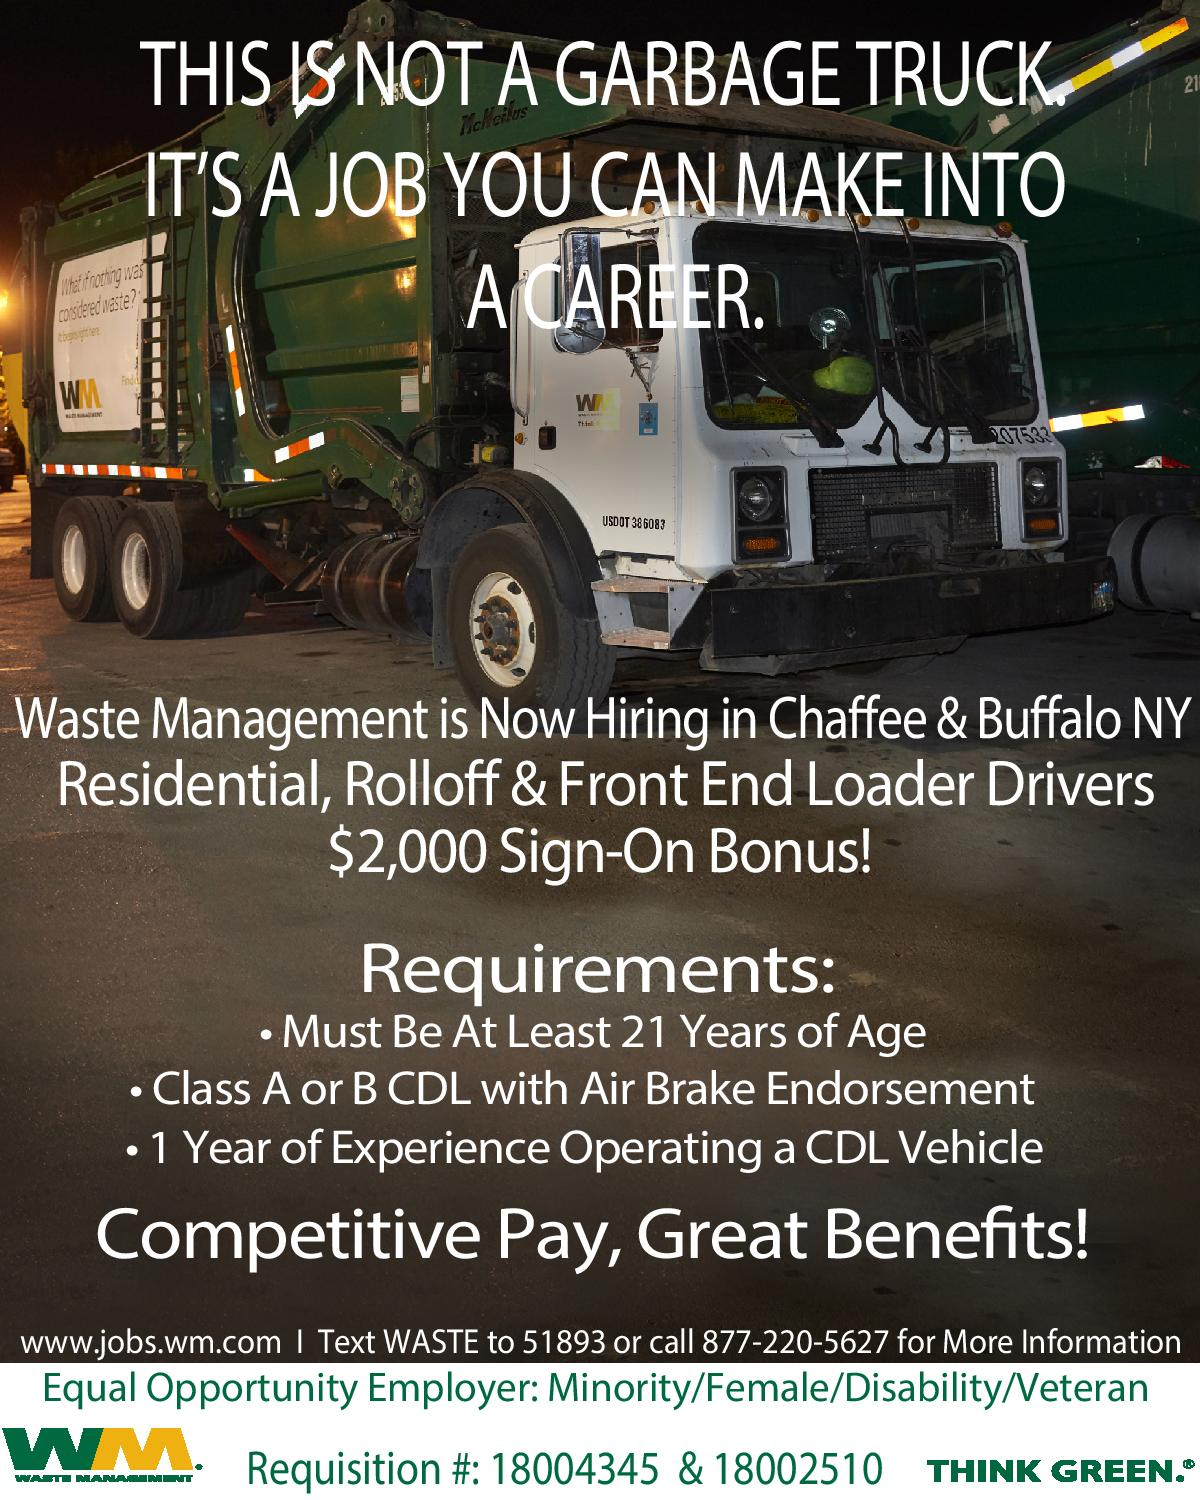 Waste Management garbage truck advertising jobs for Residential, Rolloff & Front End Loader Drivers